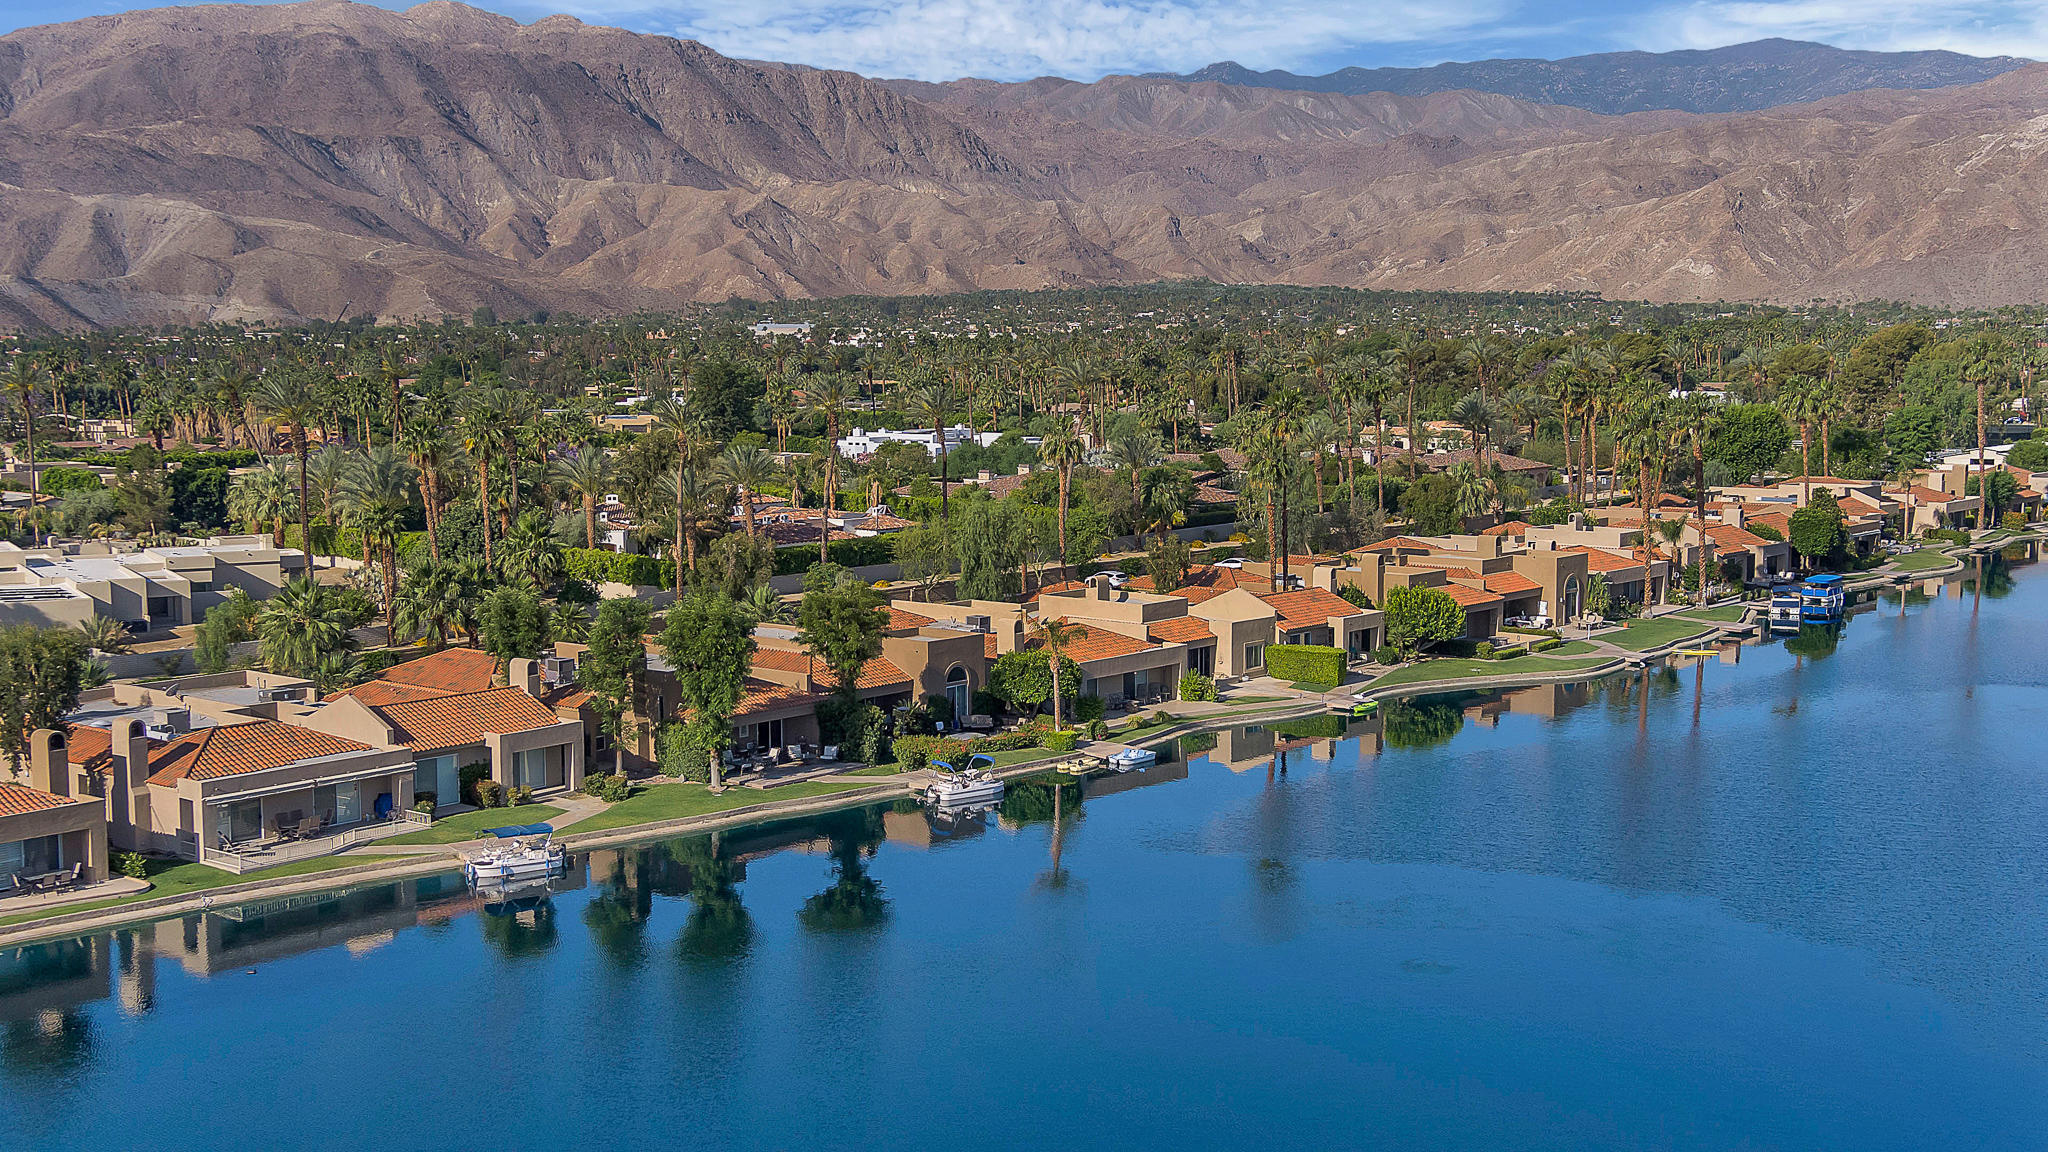 Beautiful lake front location with expansive views to the mountains. Lake Mirage offers a resort style setting offering a variety of fun Clubhouse activities,  11 Pools and Spas, 9 tennis courts, 2 Pickleball courts and 3 hole pitch 'n' putt golf course.  This 3 bedroom [one is currently used as a DEN] , End Unit, has high ceilings, private dining room with rock waterfall atrium and a kitchen with breakfast room overlooking the lake.  Hardwood flooring, crown molding and fireplace with marble detailing are just a few of the interior features.  Enjoy outdoor dining on the expanded patio.  Private Dock. Boat is included.  Central Rancho Mirage location within minutes to shopping, dining, Theater, Eisenhower Health Center, hiking and a 20 minute drive to Palm Springs International Airport.  This is the perfect weekend get-away or forever home.